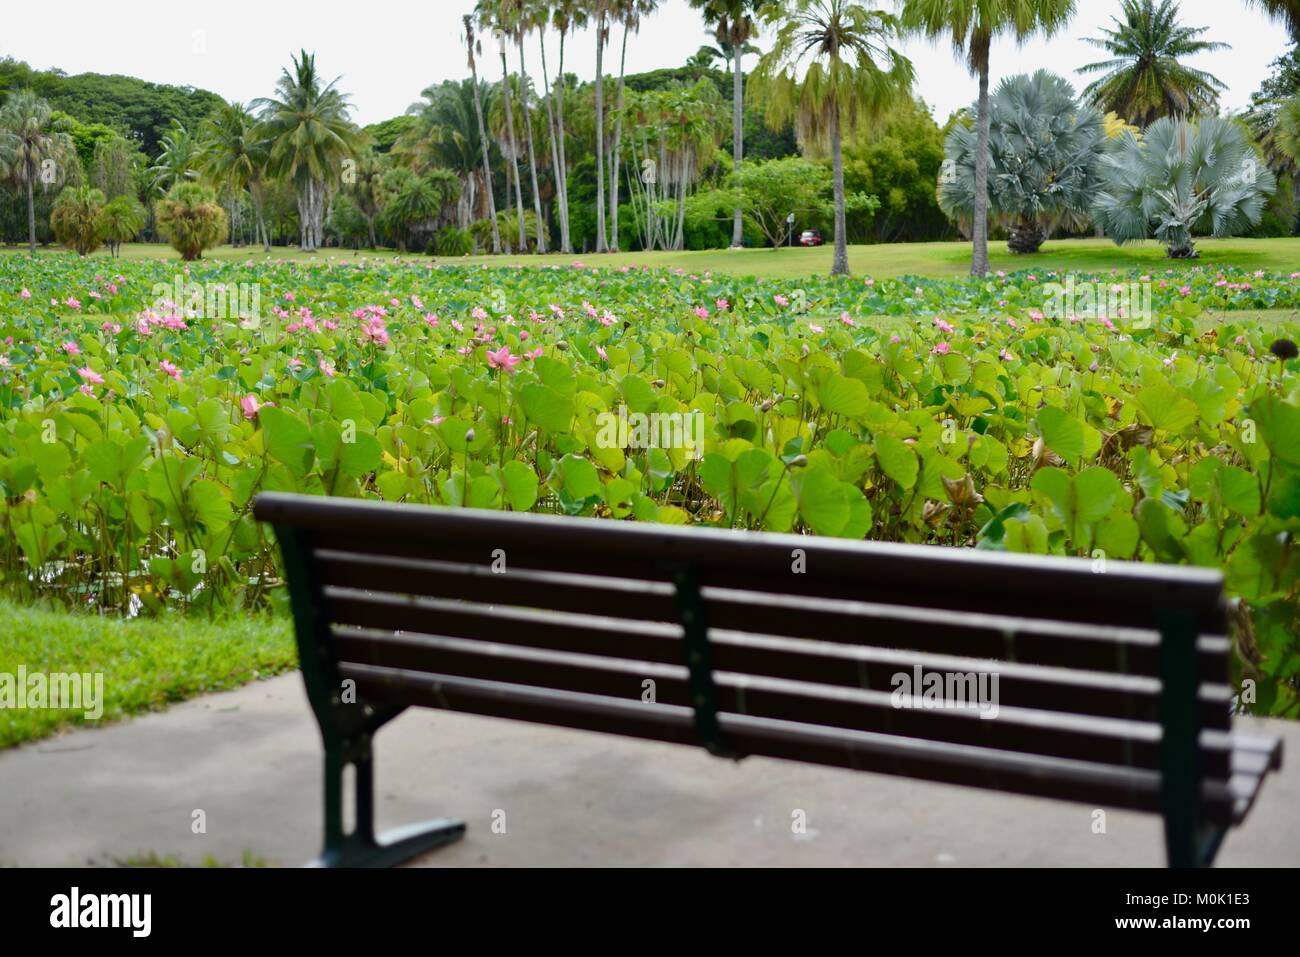 Park bench with pink lilies in full bloom, Anderson Park Botanic Gardens, Townsville, Queensland, Australia Stock Photo